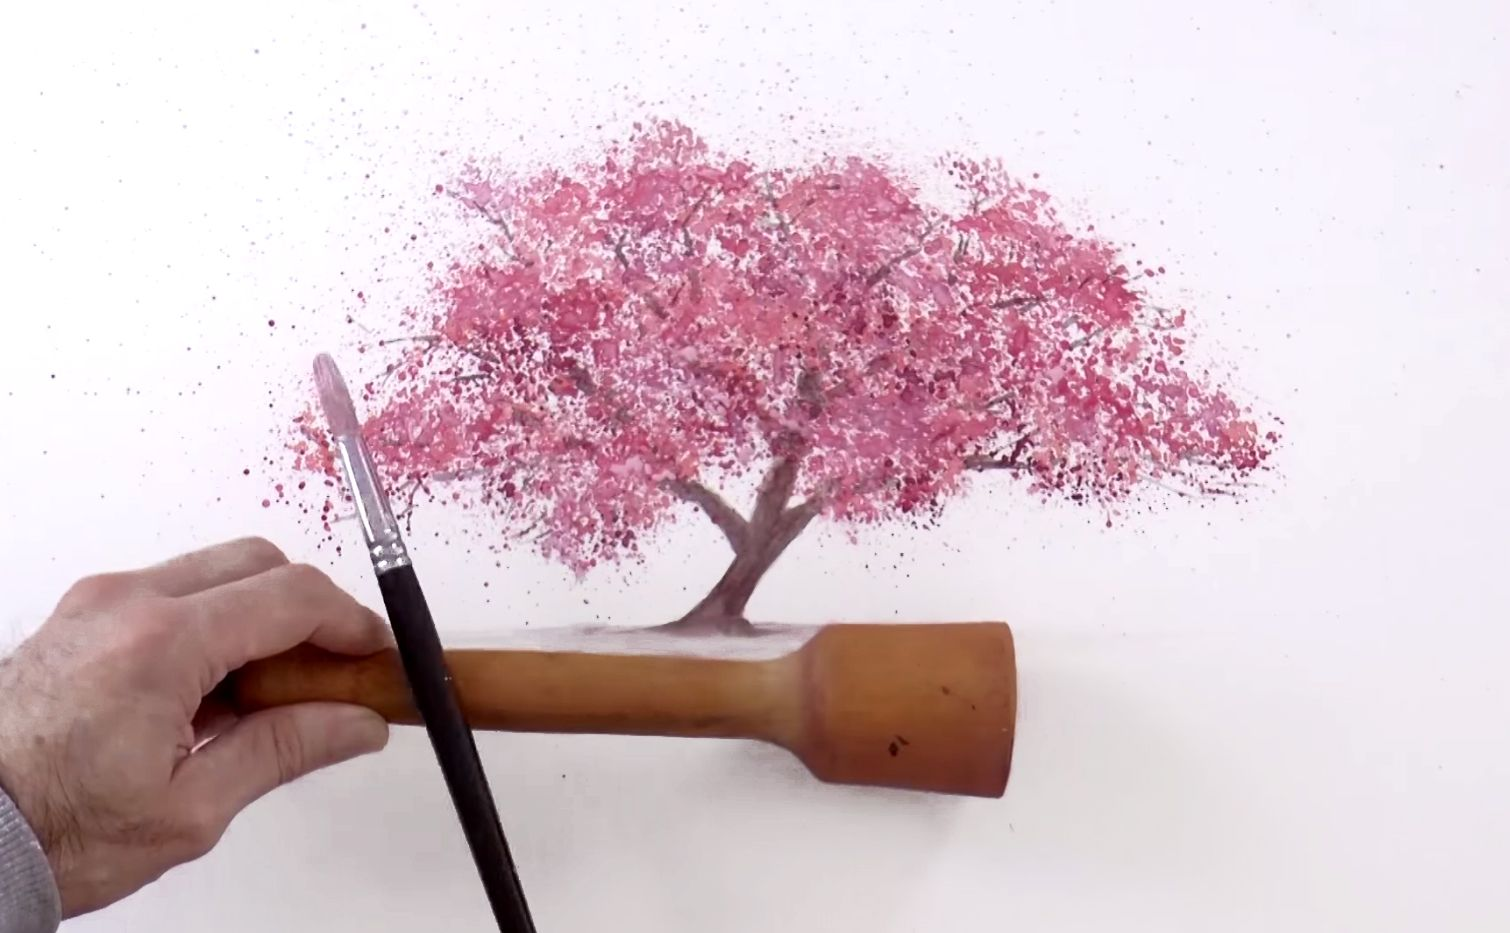 Watercolor Technique To Splatter Cherry Blossom Trees Cherry Blossom Art Cherry Blossom Watercolor Cherry Blossom Painting